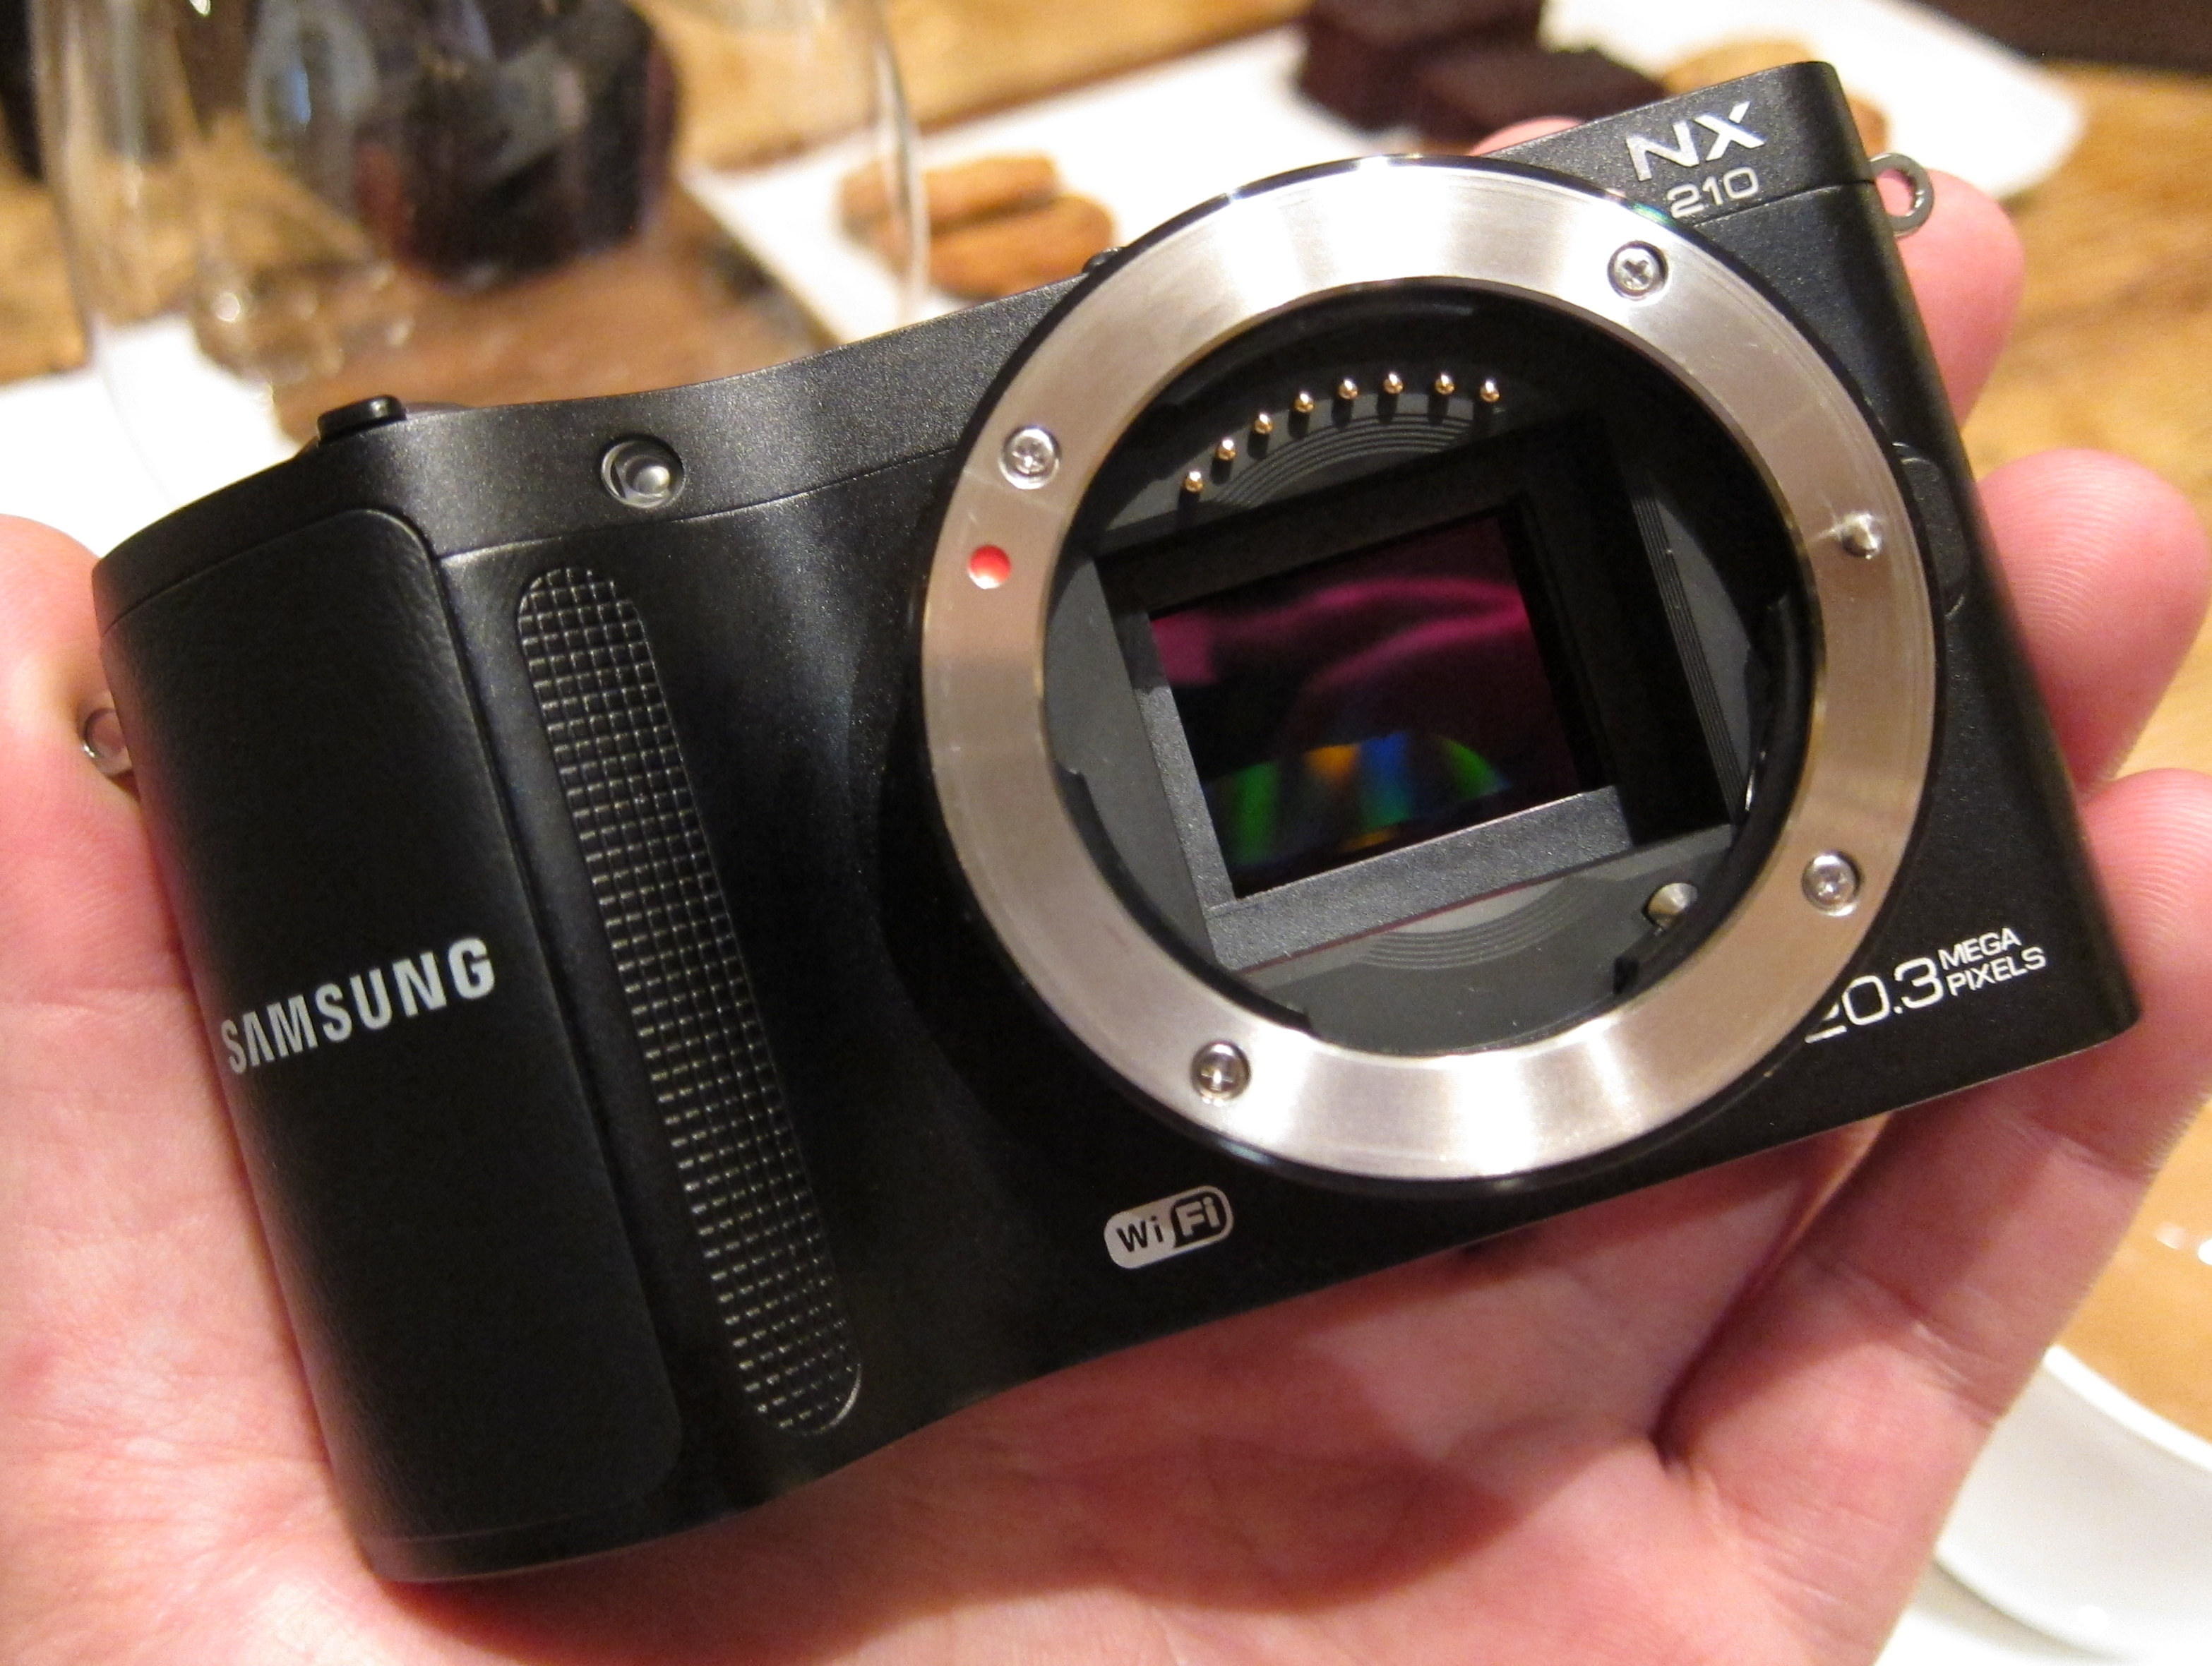 Samsung NX210 Compact System Camera